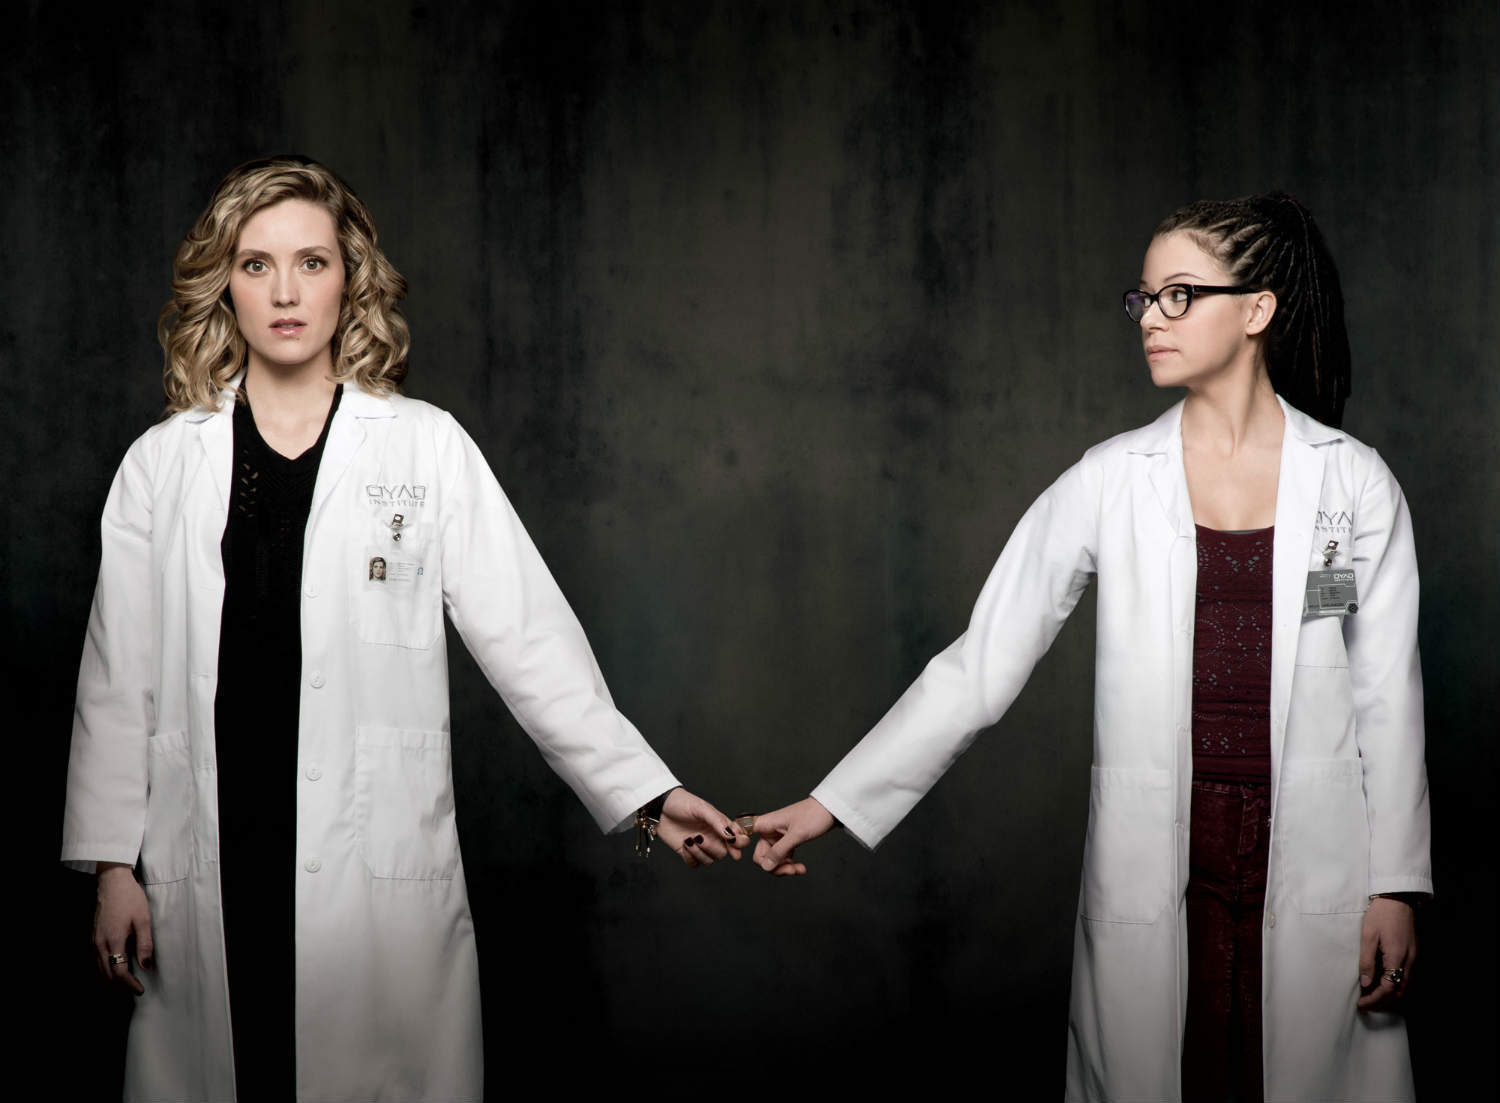 zap-orphan-black-season-2-posters-photos-20140-016